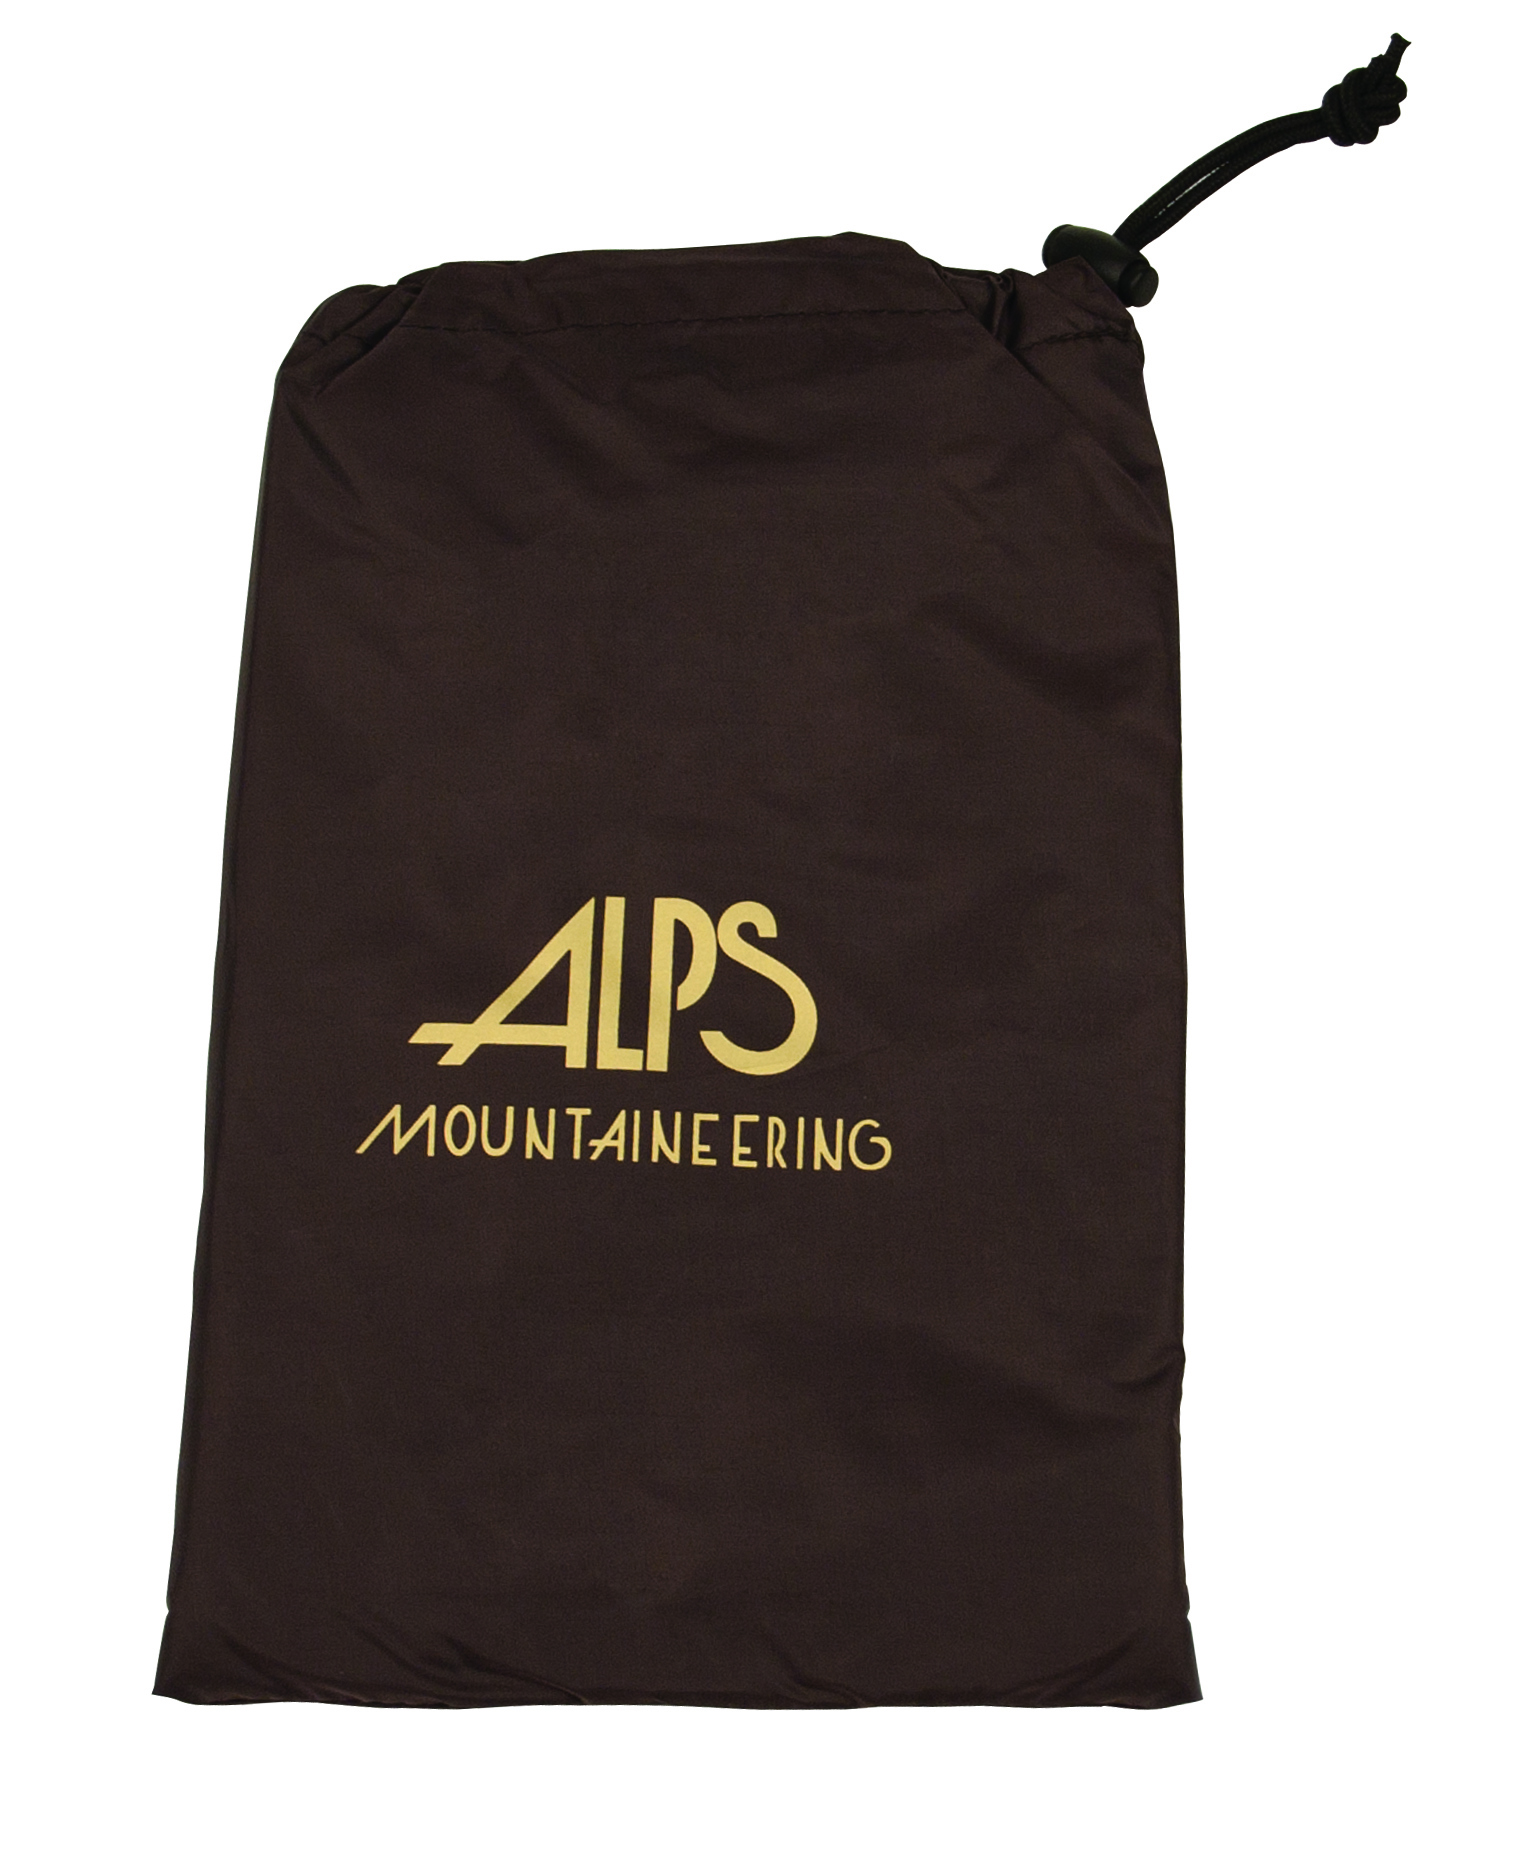 ALPS Mountaineering Mystique 1 Floor Saver